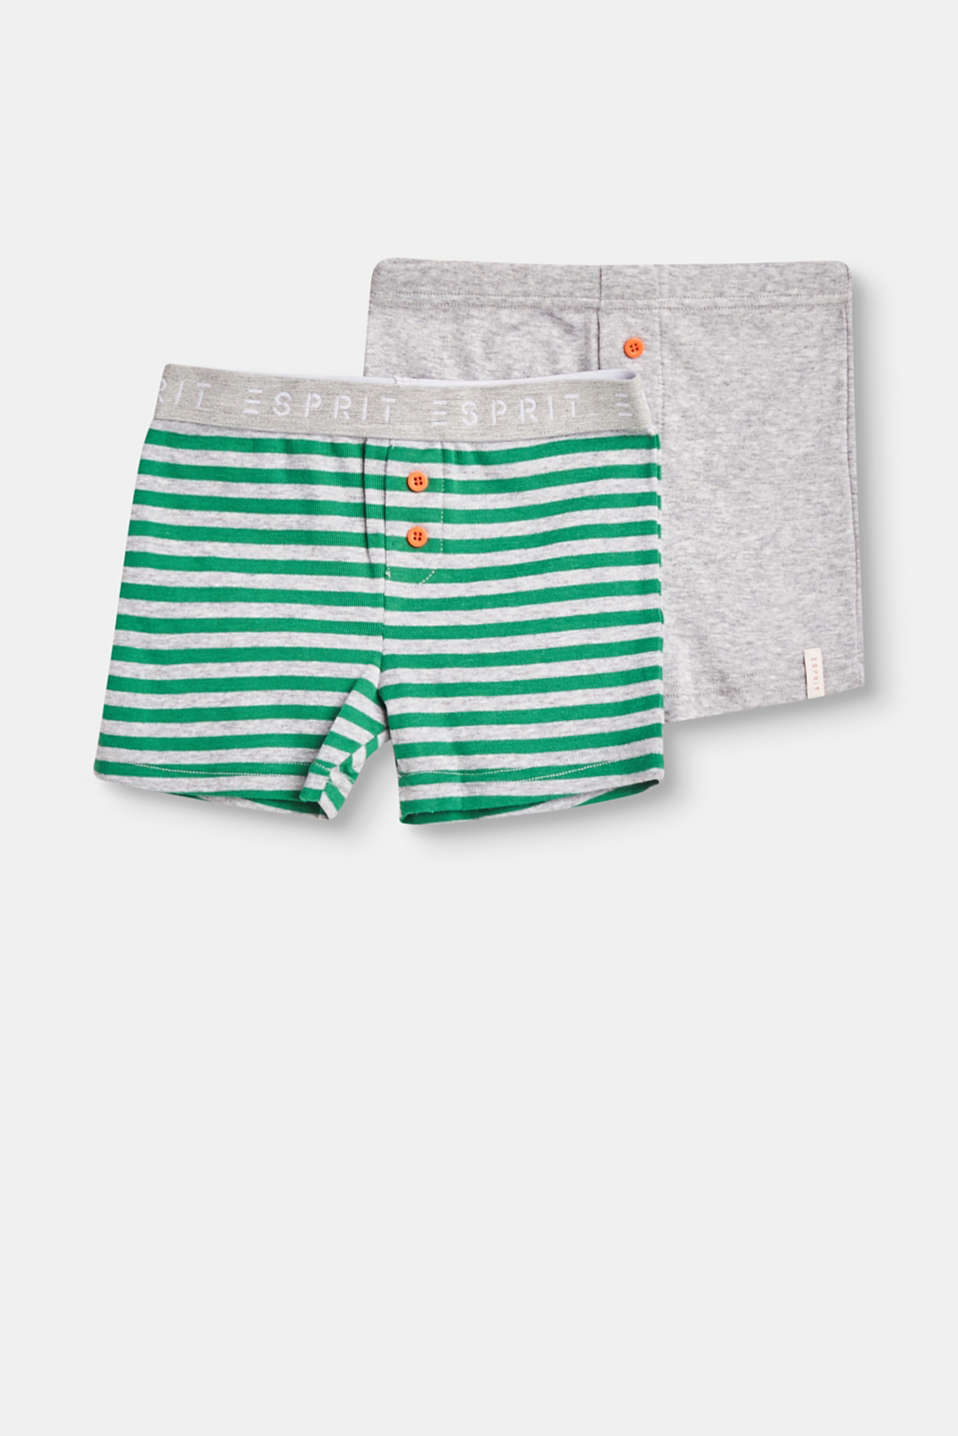 Whether in a striped look or with a fine melange finish: These soft jersey shorts in a practical double pack are super comfy and simply cool.